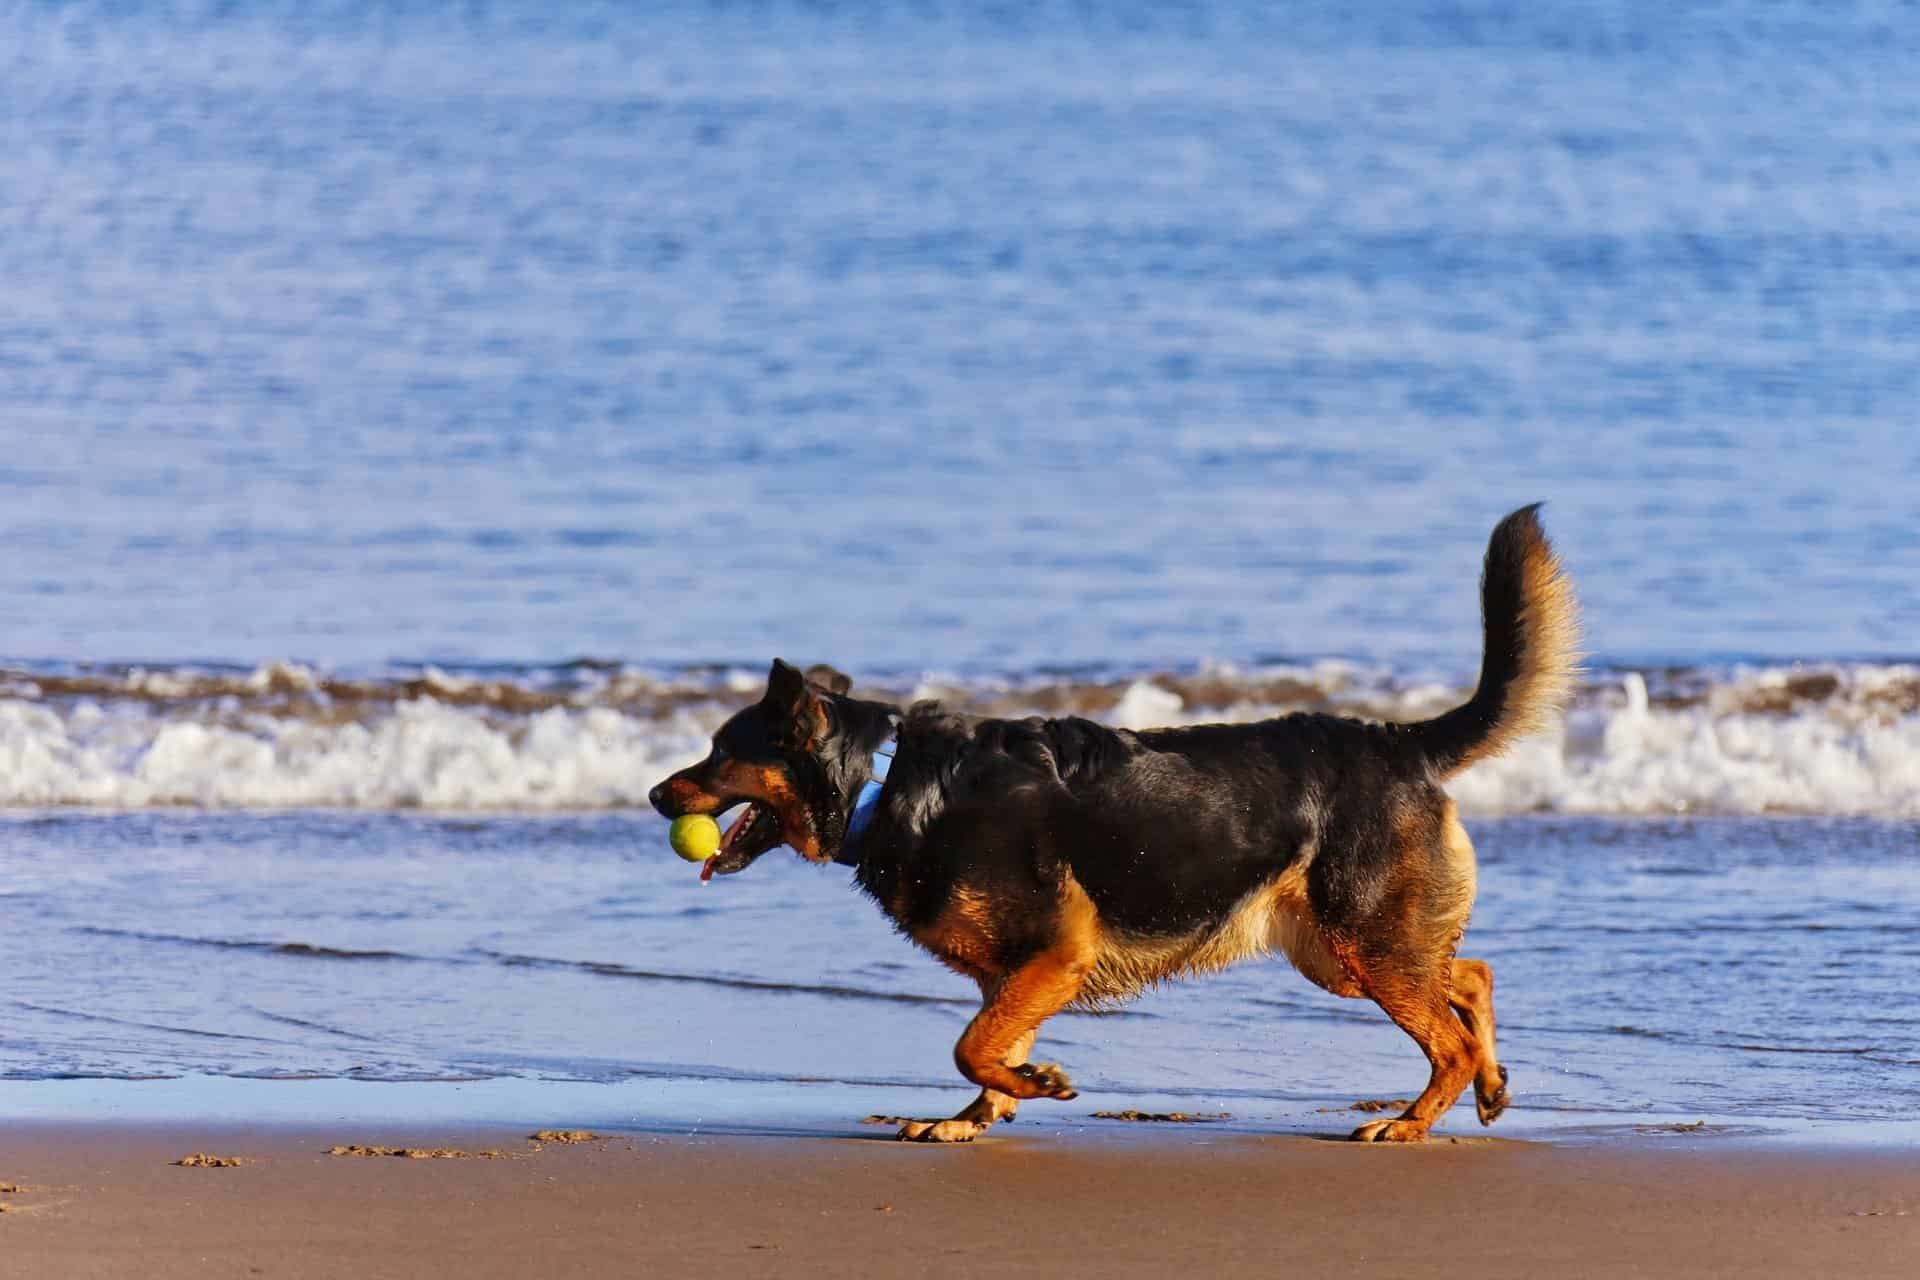 Dog with a raised and stiff tail walking on the beach.